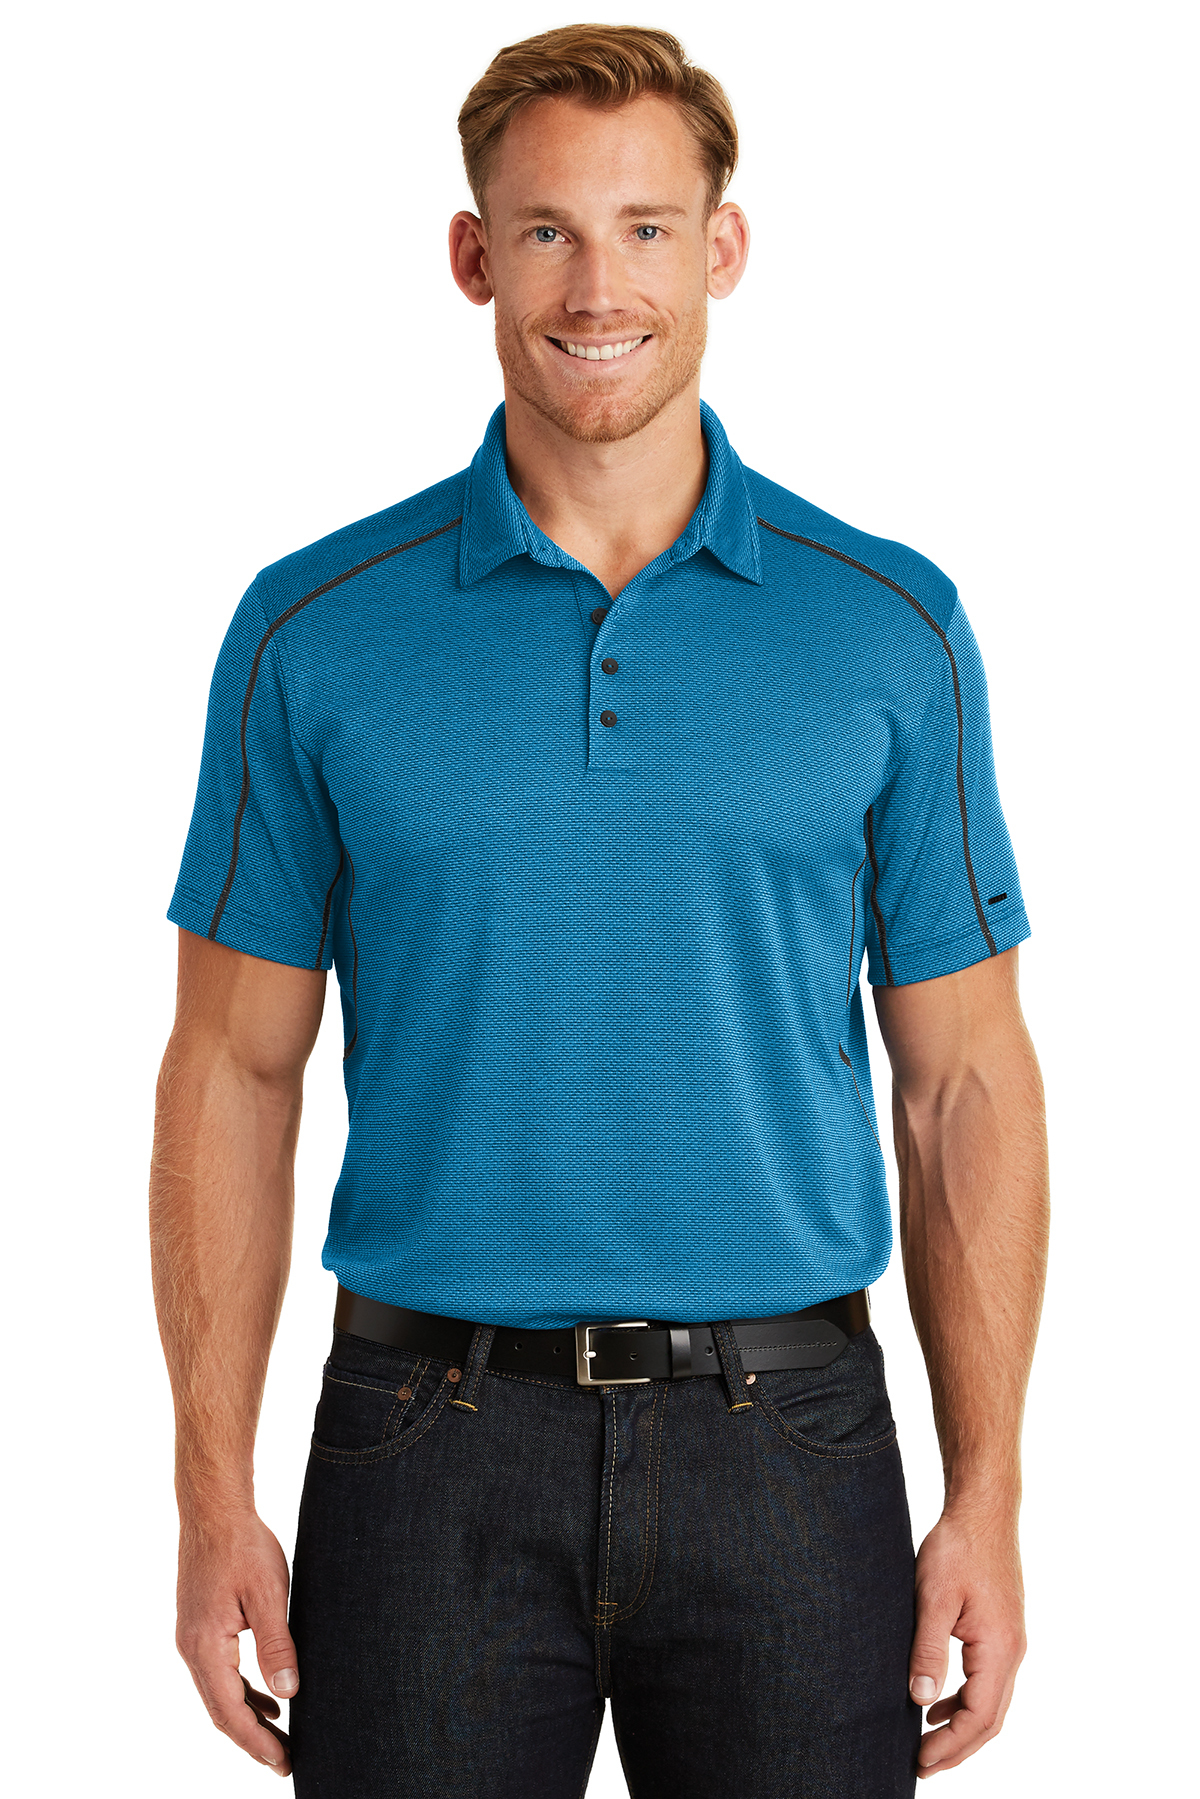 OGIO OG133 - Men's Orbit Polo